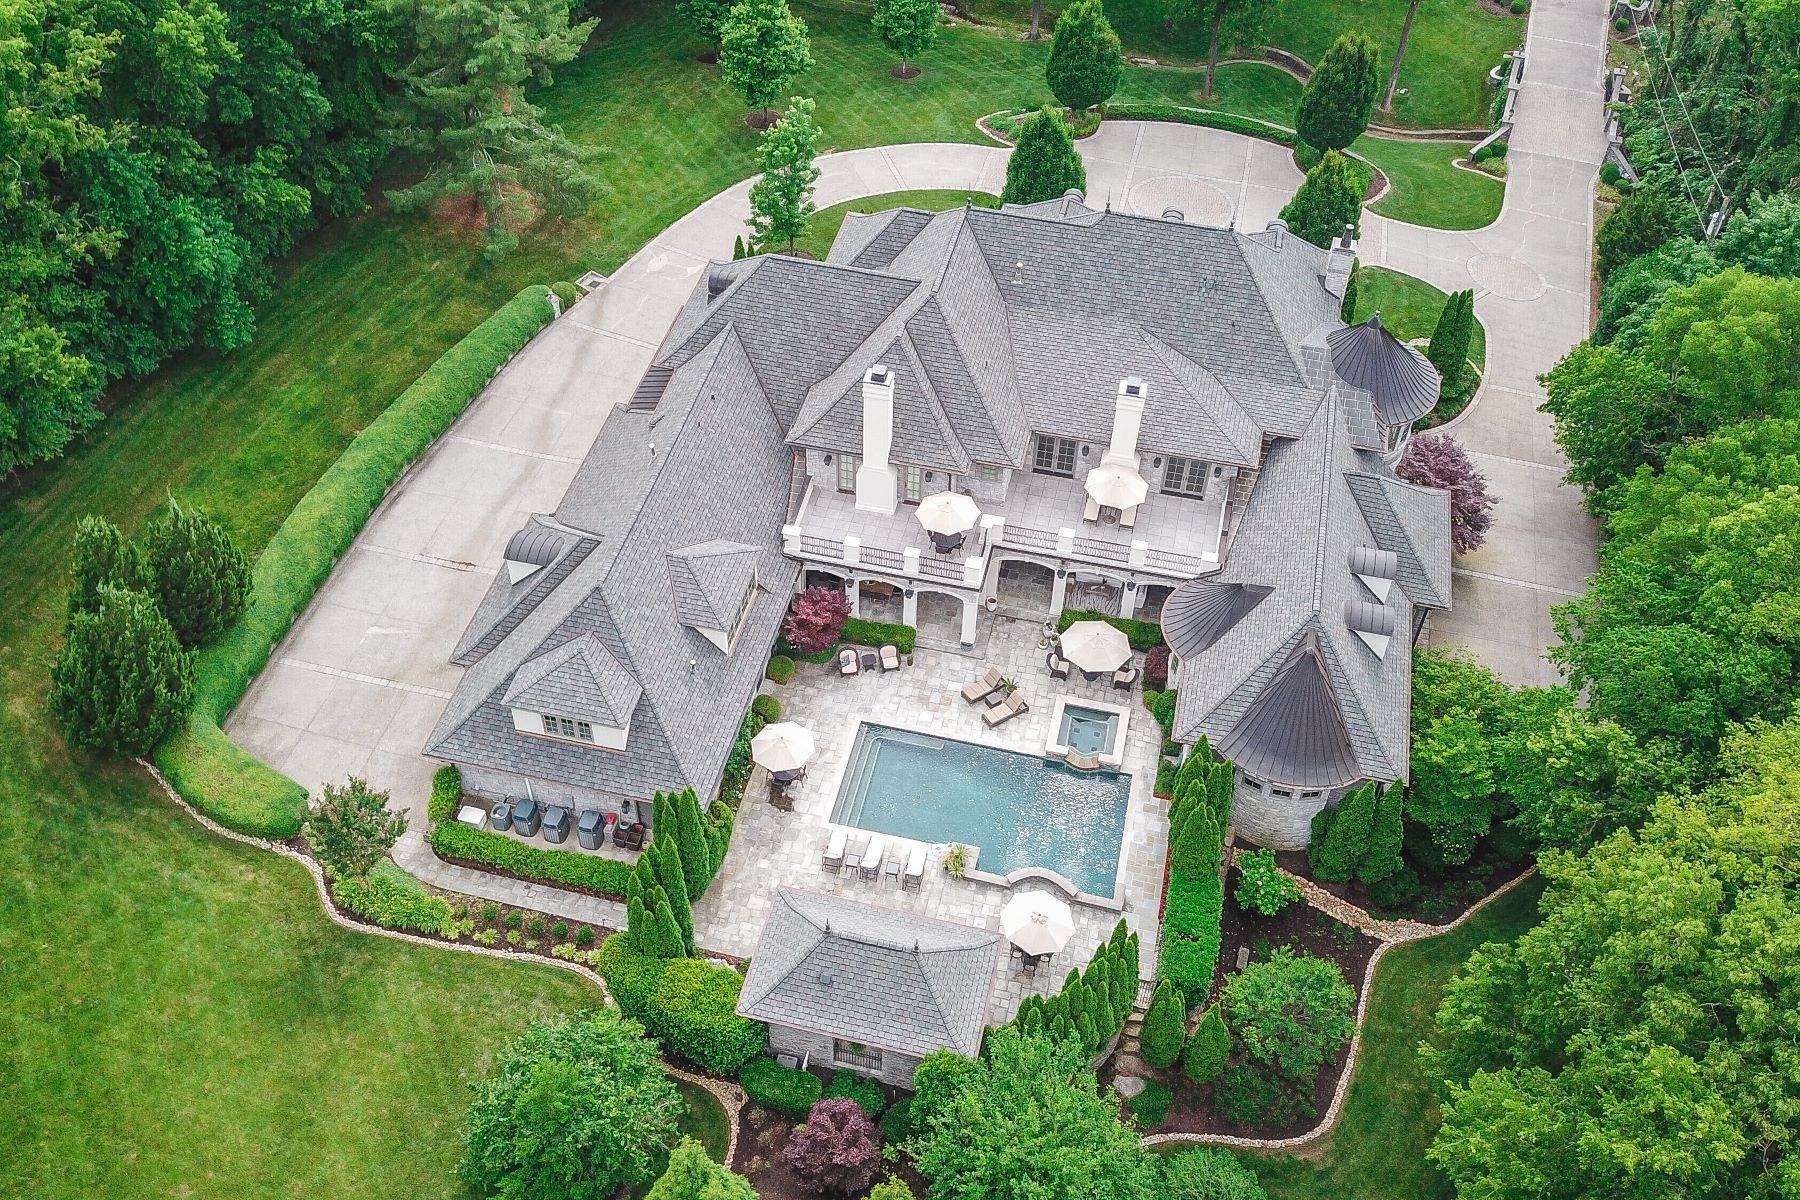 7. Single Family Homes for Sale at 4914 Lealand Ln, Nashville, Tn, 37220 4914 Lealand Ln Nashville, Tennessee 37220 United States